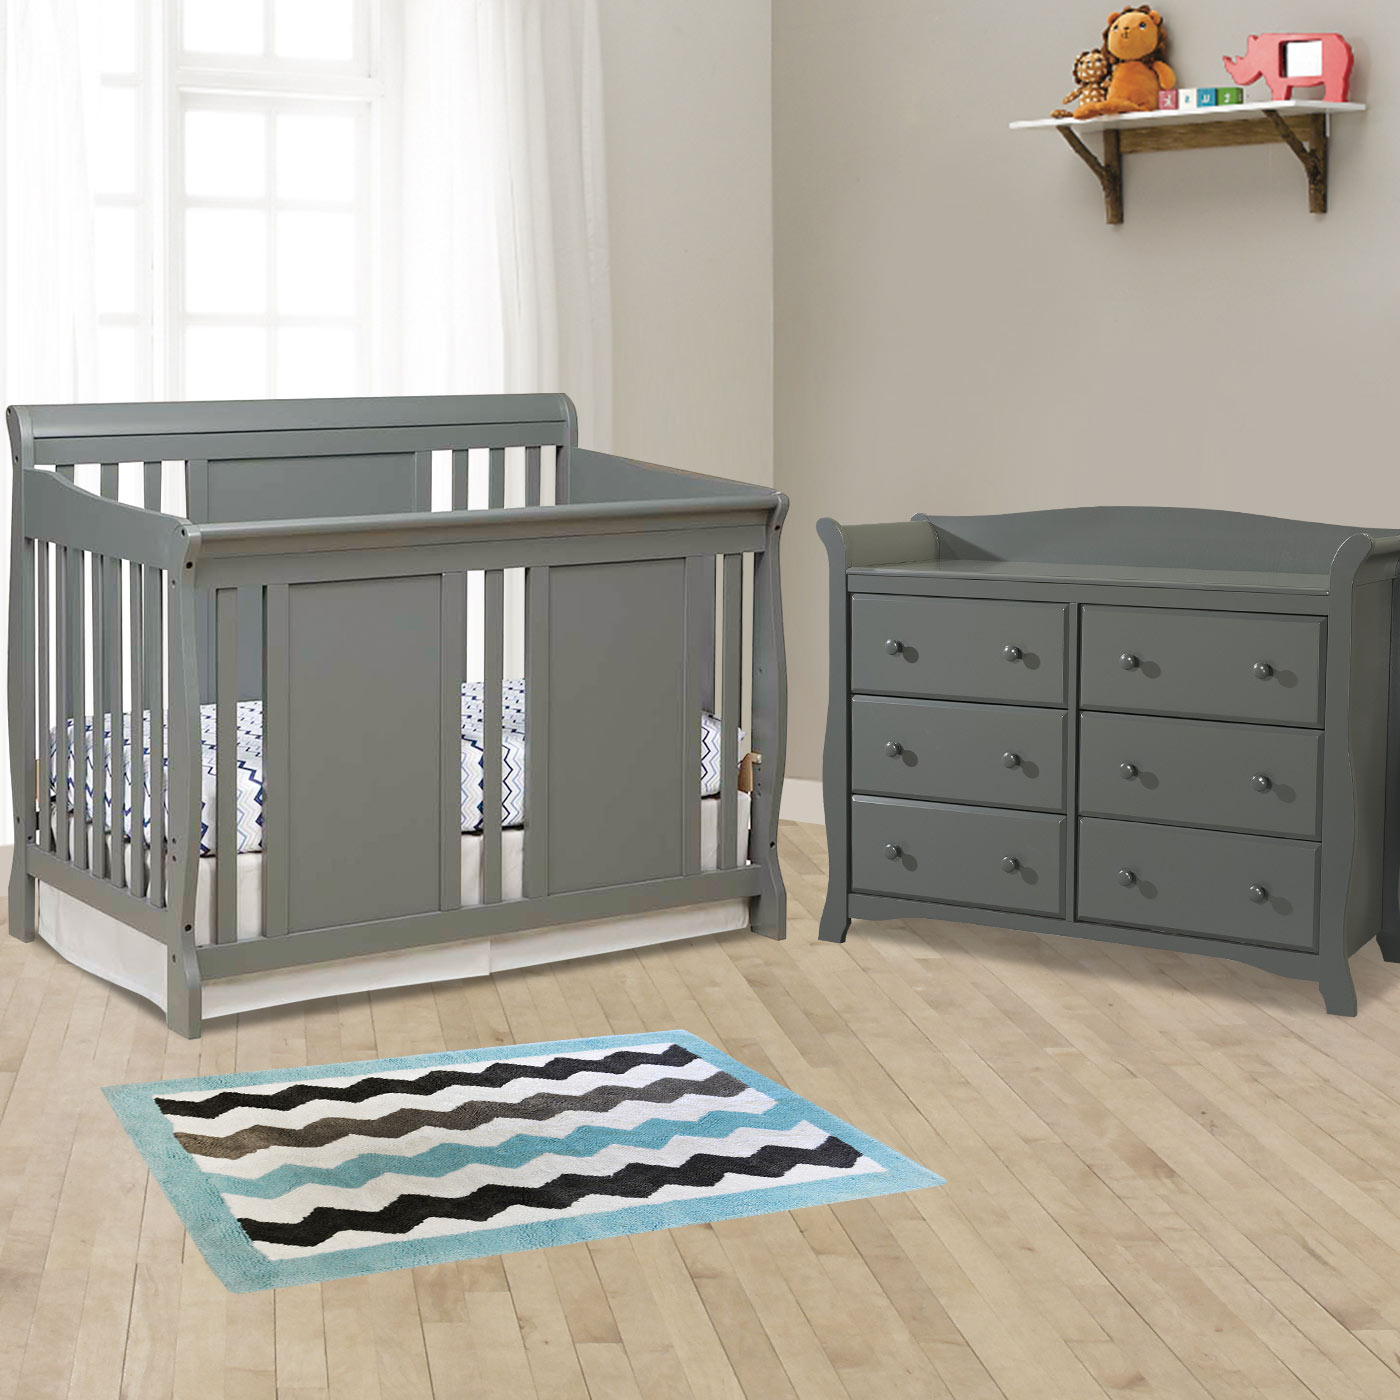 children products bed and cherry sonoma changing changer delta table res crib day n espresso hi